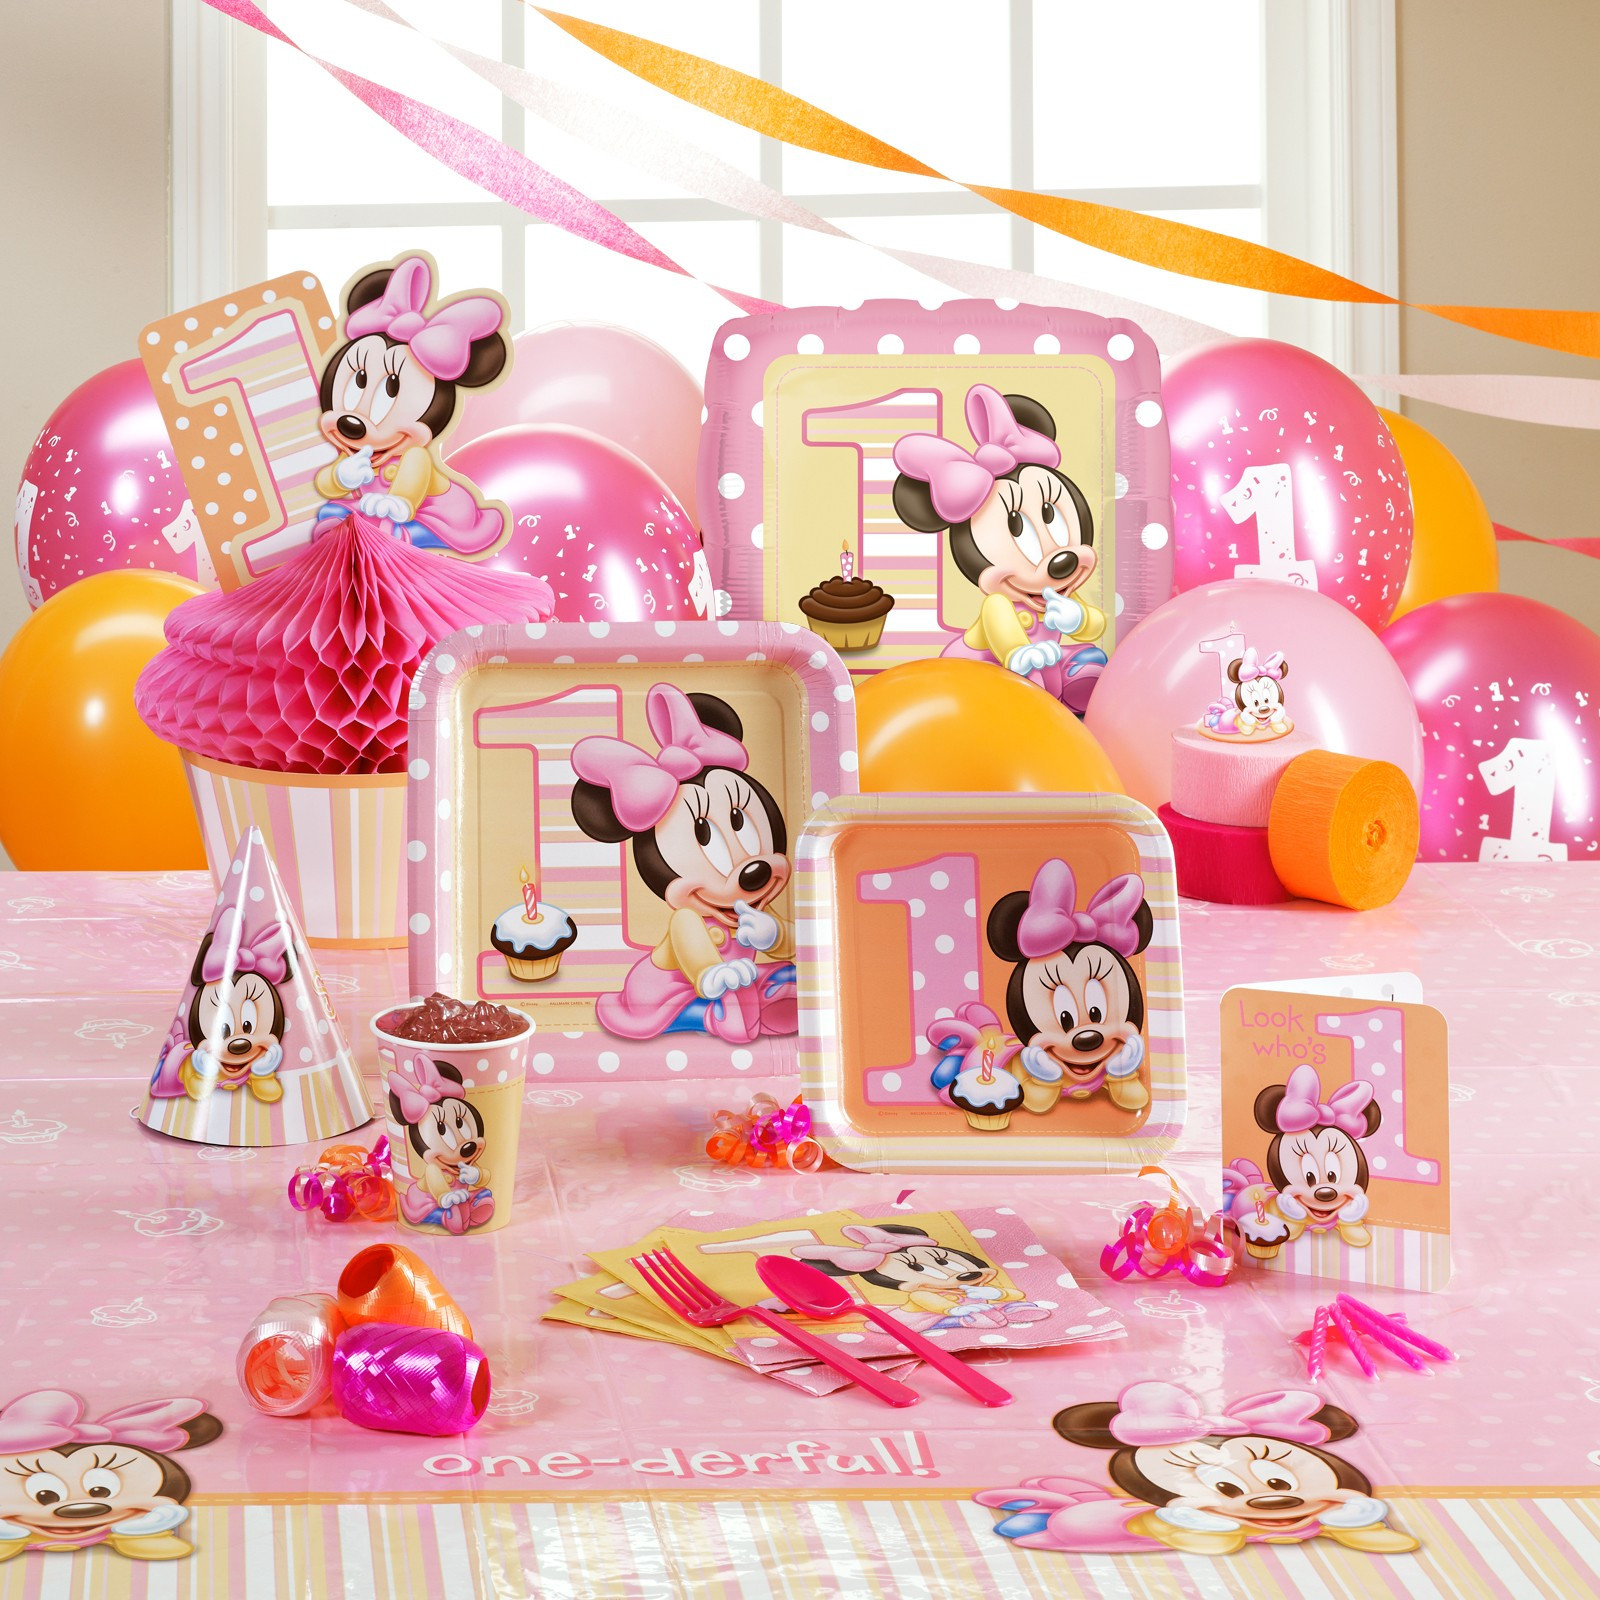 Best ideas about Minnie Mouse First Birthday Decorations . Save or Pin Minnie Mouse 1st Birthday Party Now.